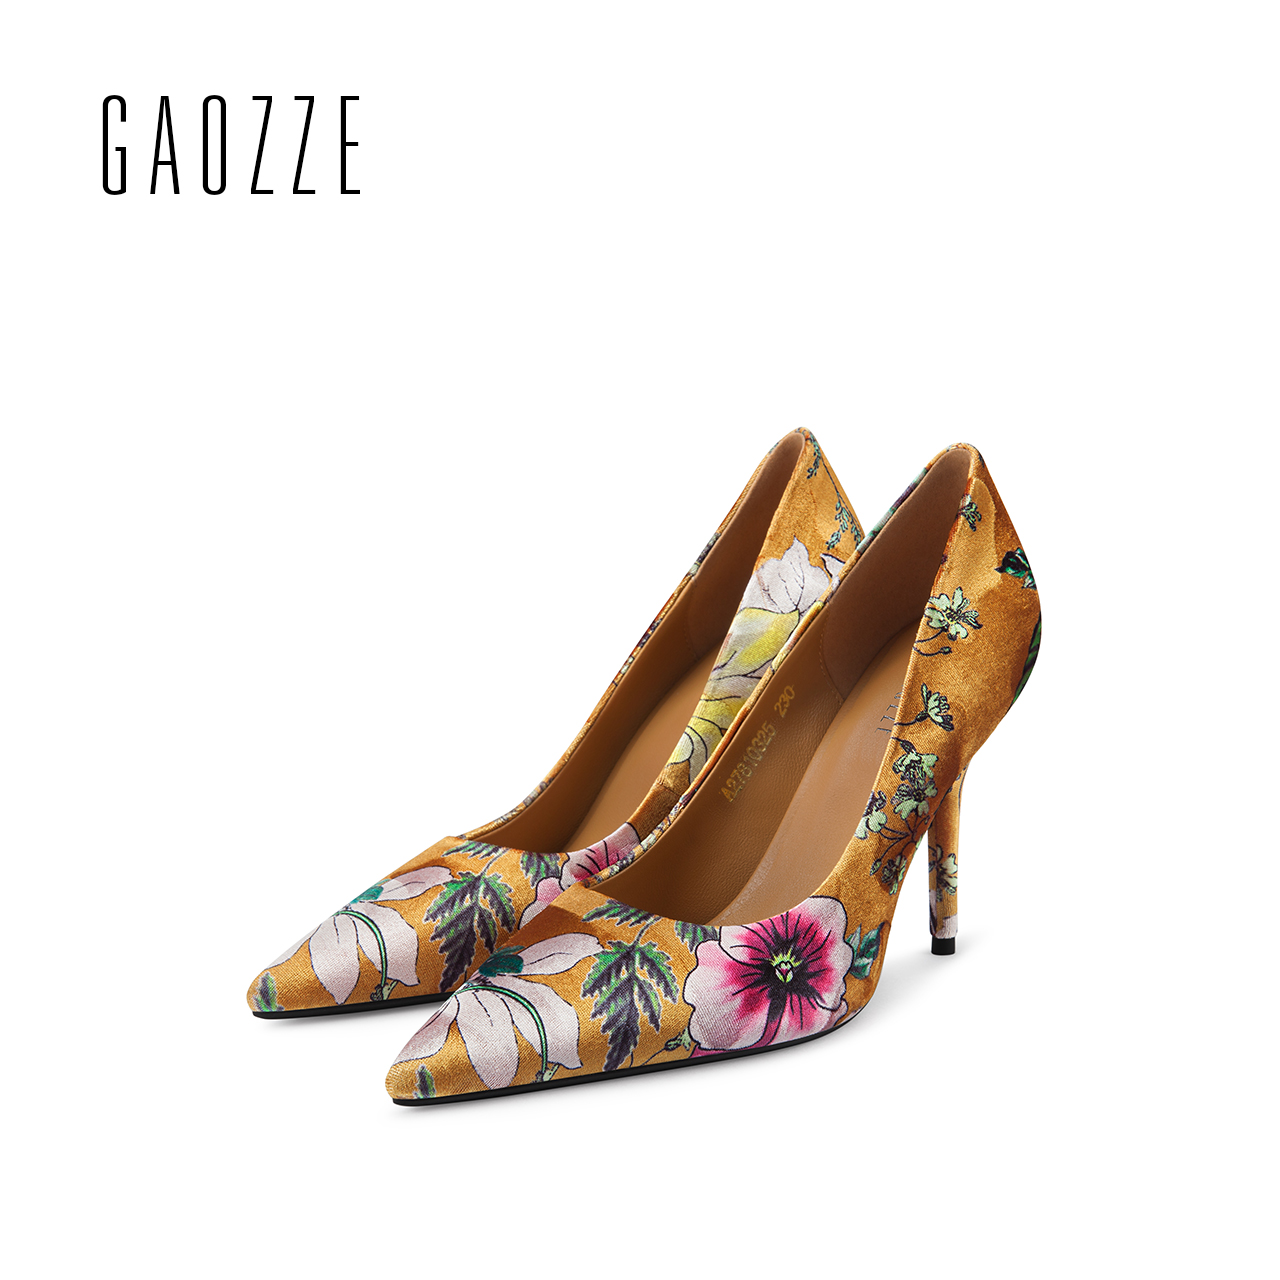 GAOZZE 2017 autumn new sexy pointed toe high heels pump shoes women floral fashion high heels shallow mouth women shoes camel 2015 autumn new fashion women pump cashmere calfskin round lace deep mouth high heeled shoes a53040605